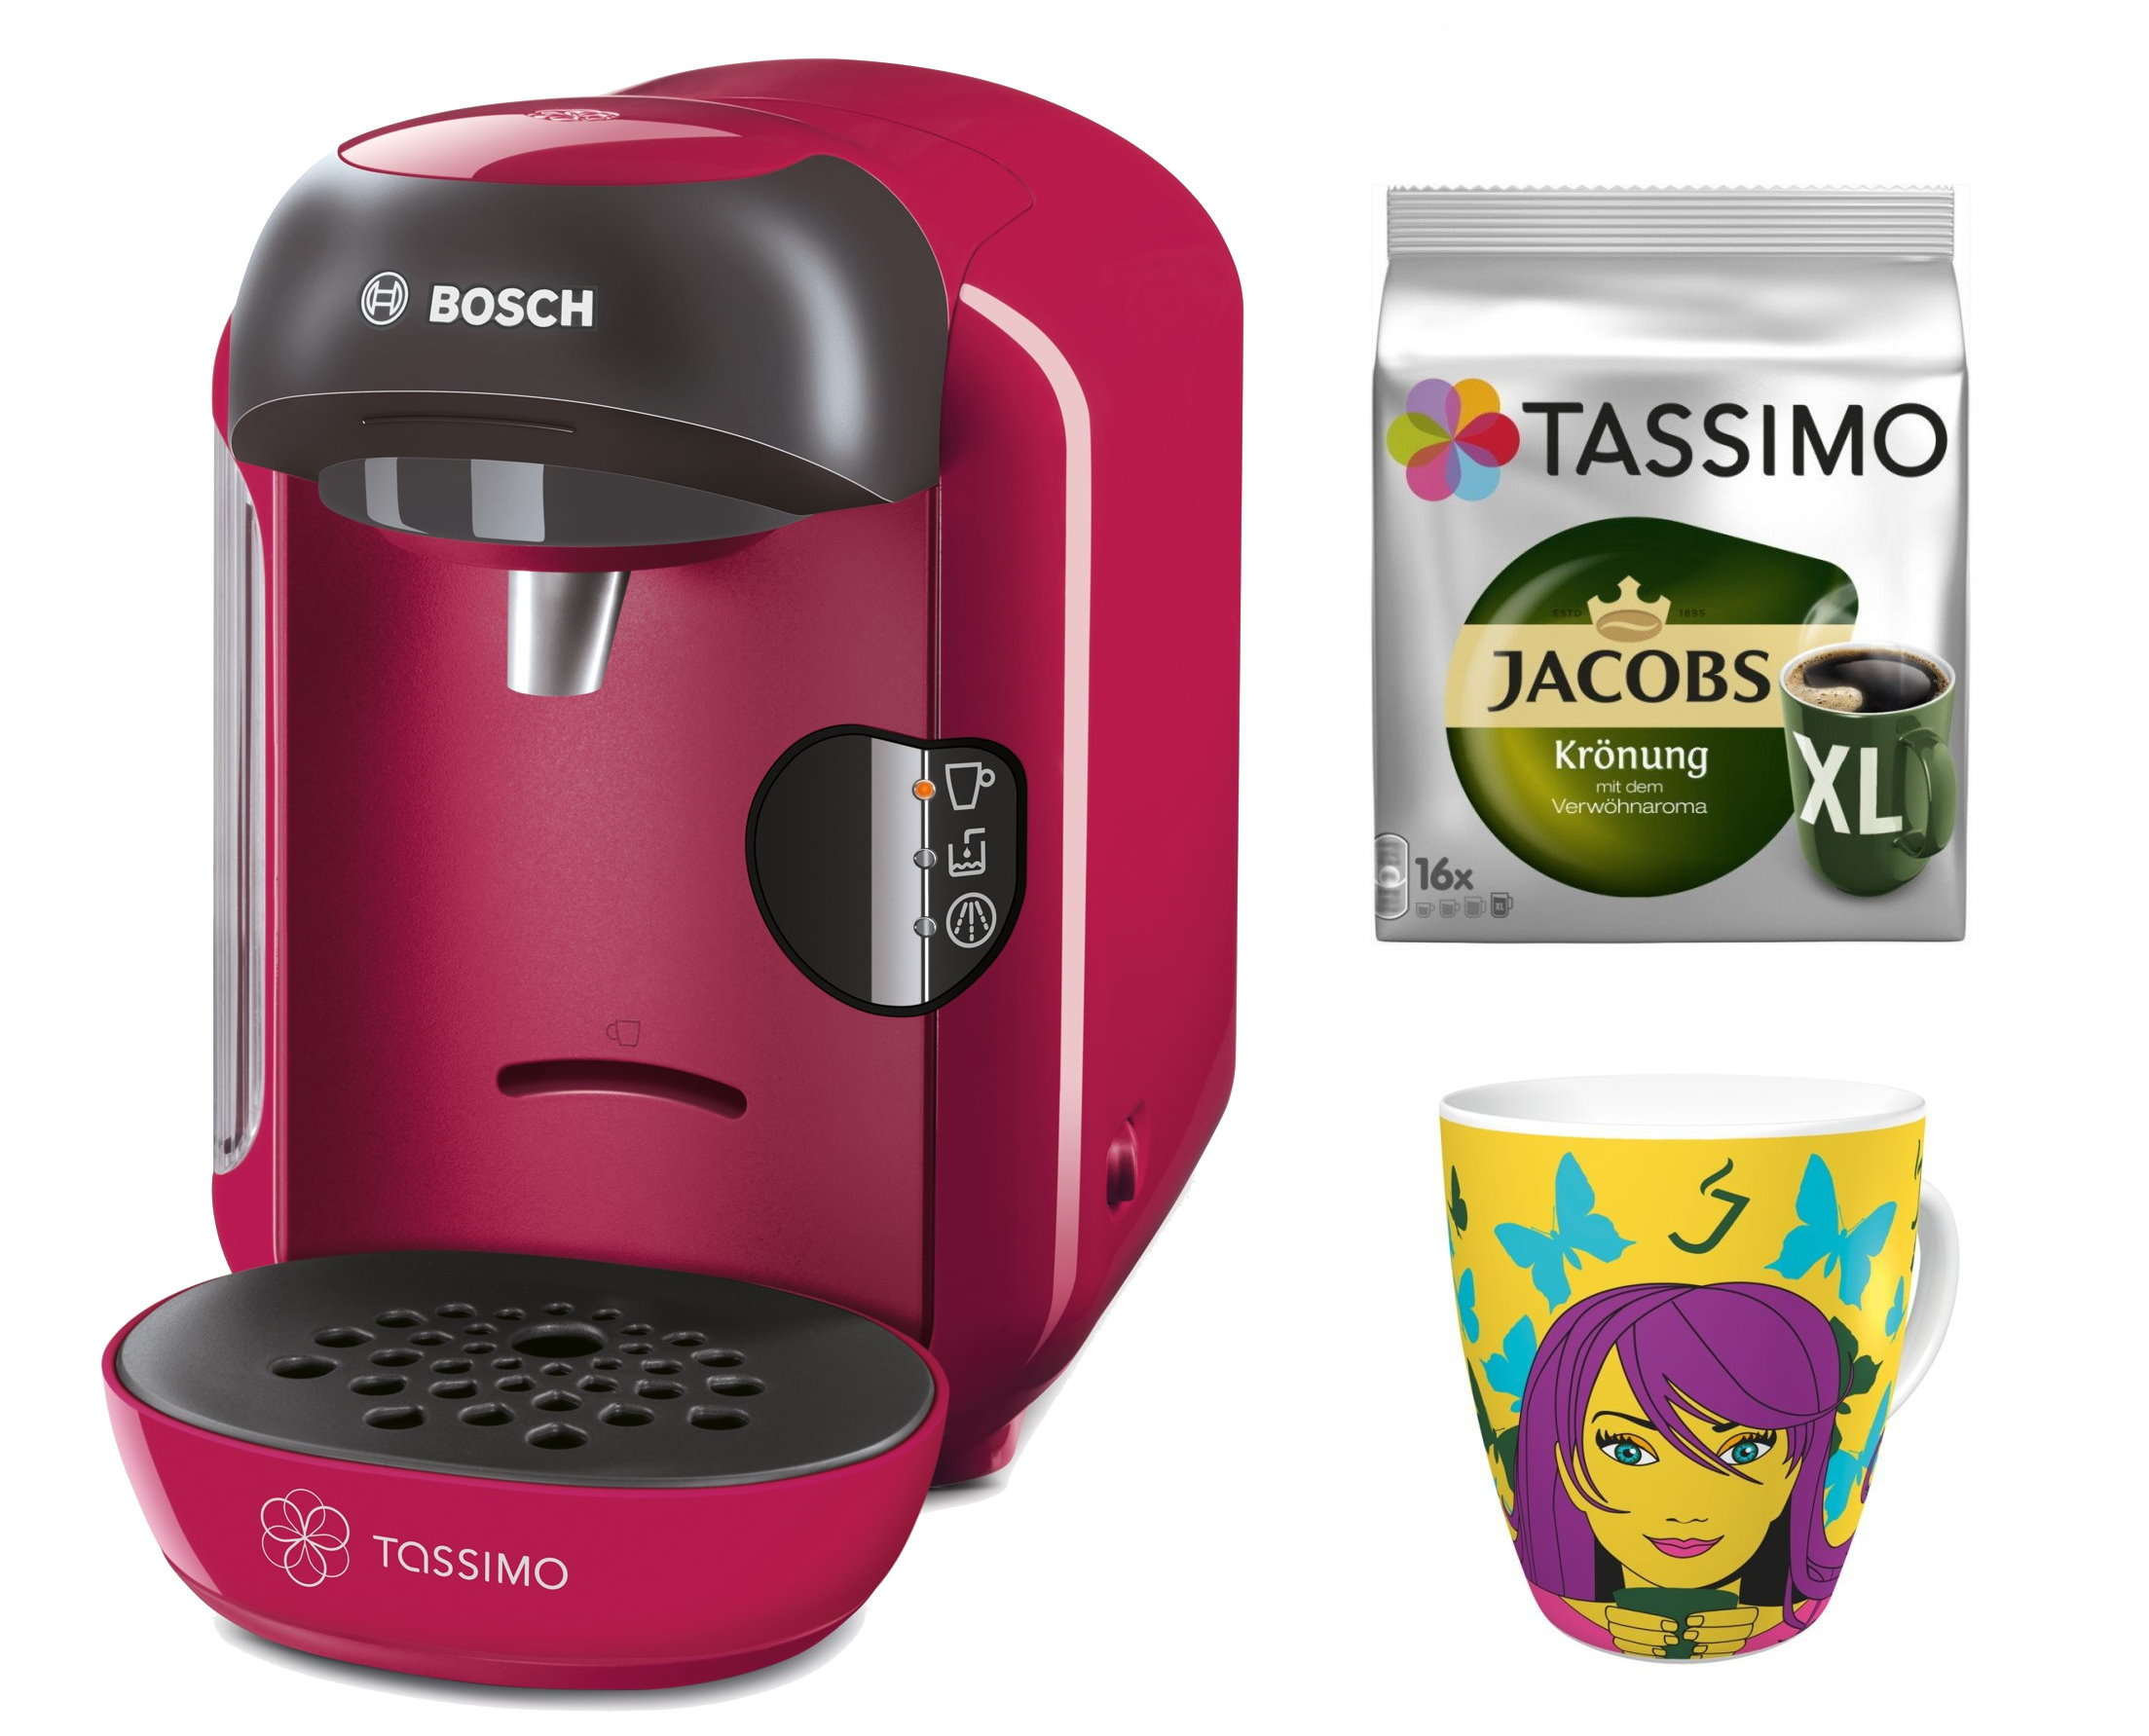 bosch tassimo vivy bons d 39 achat jacobs tdiscs ritzenhoff sammelbecher ebay. Black Bedroom Furniture Sets. Home Design Ideas